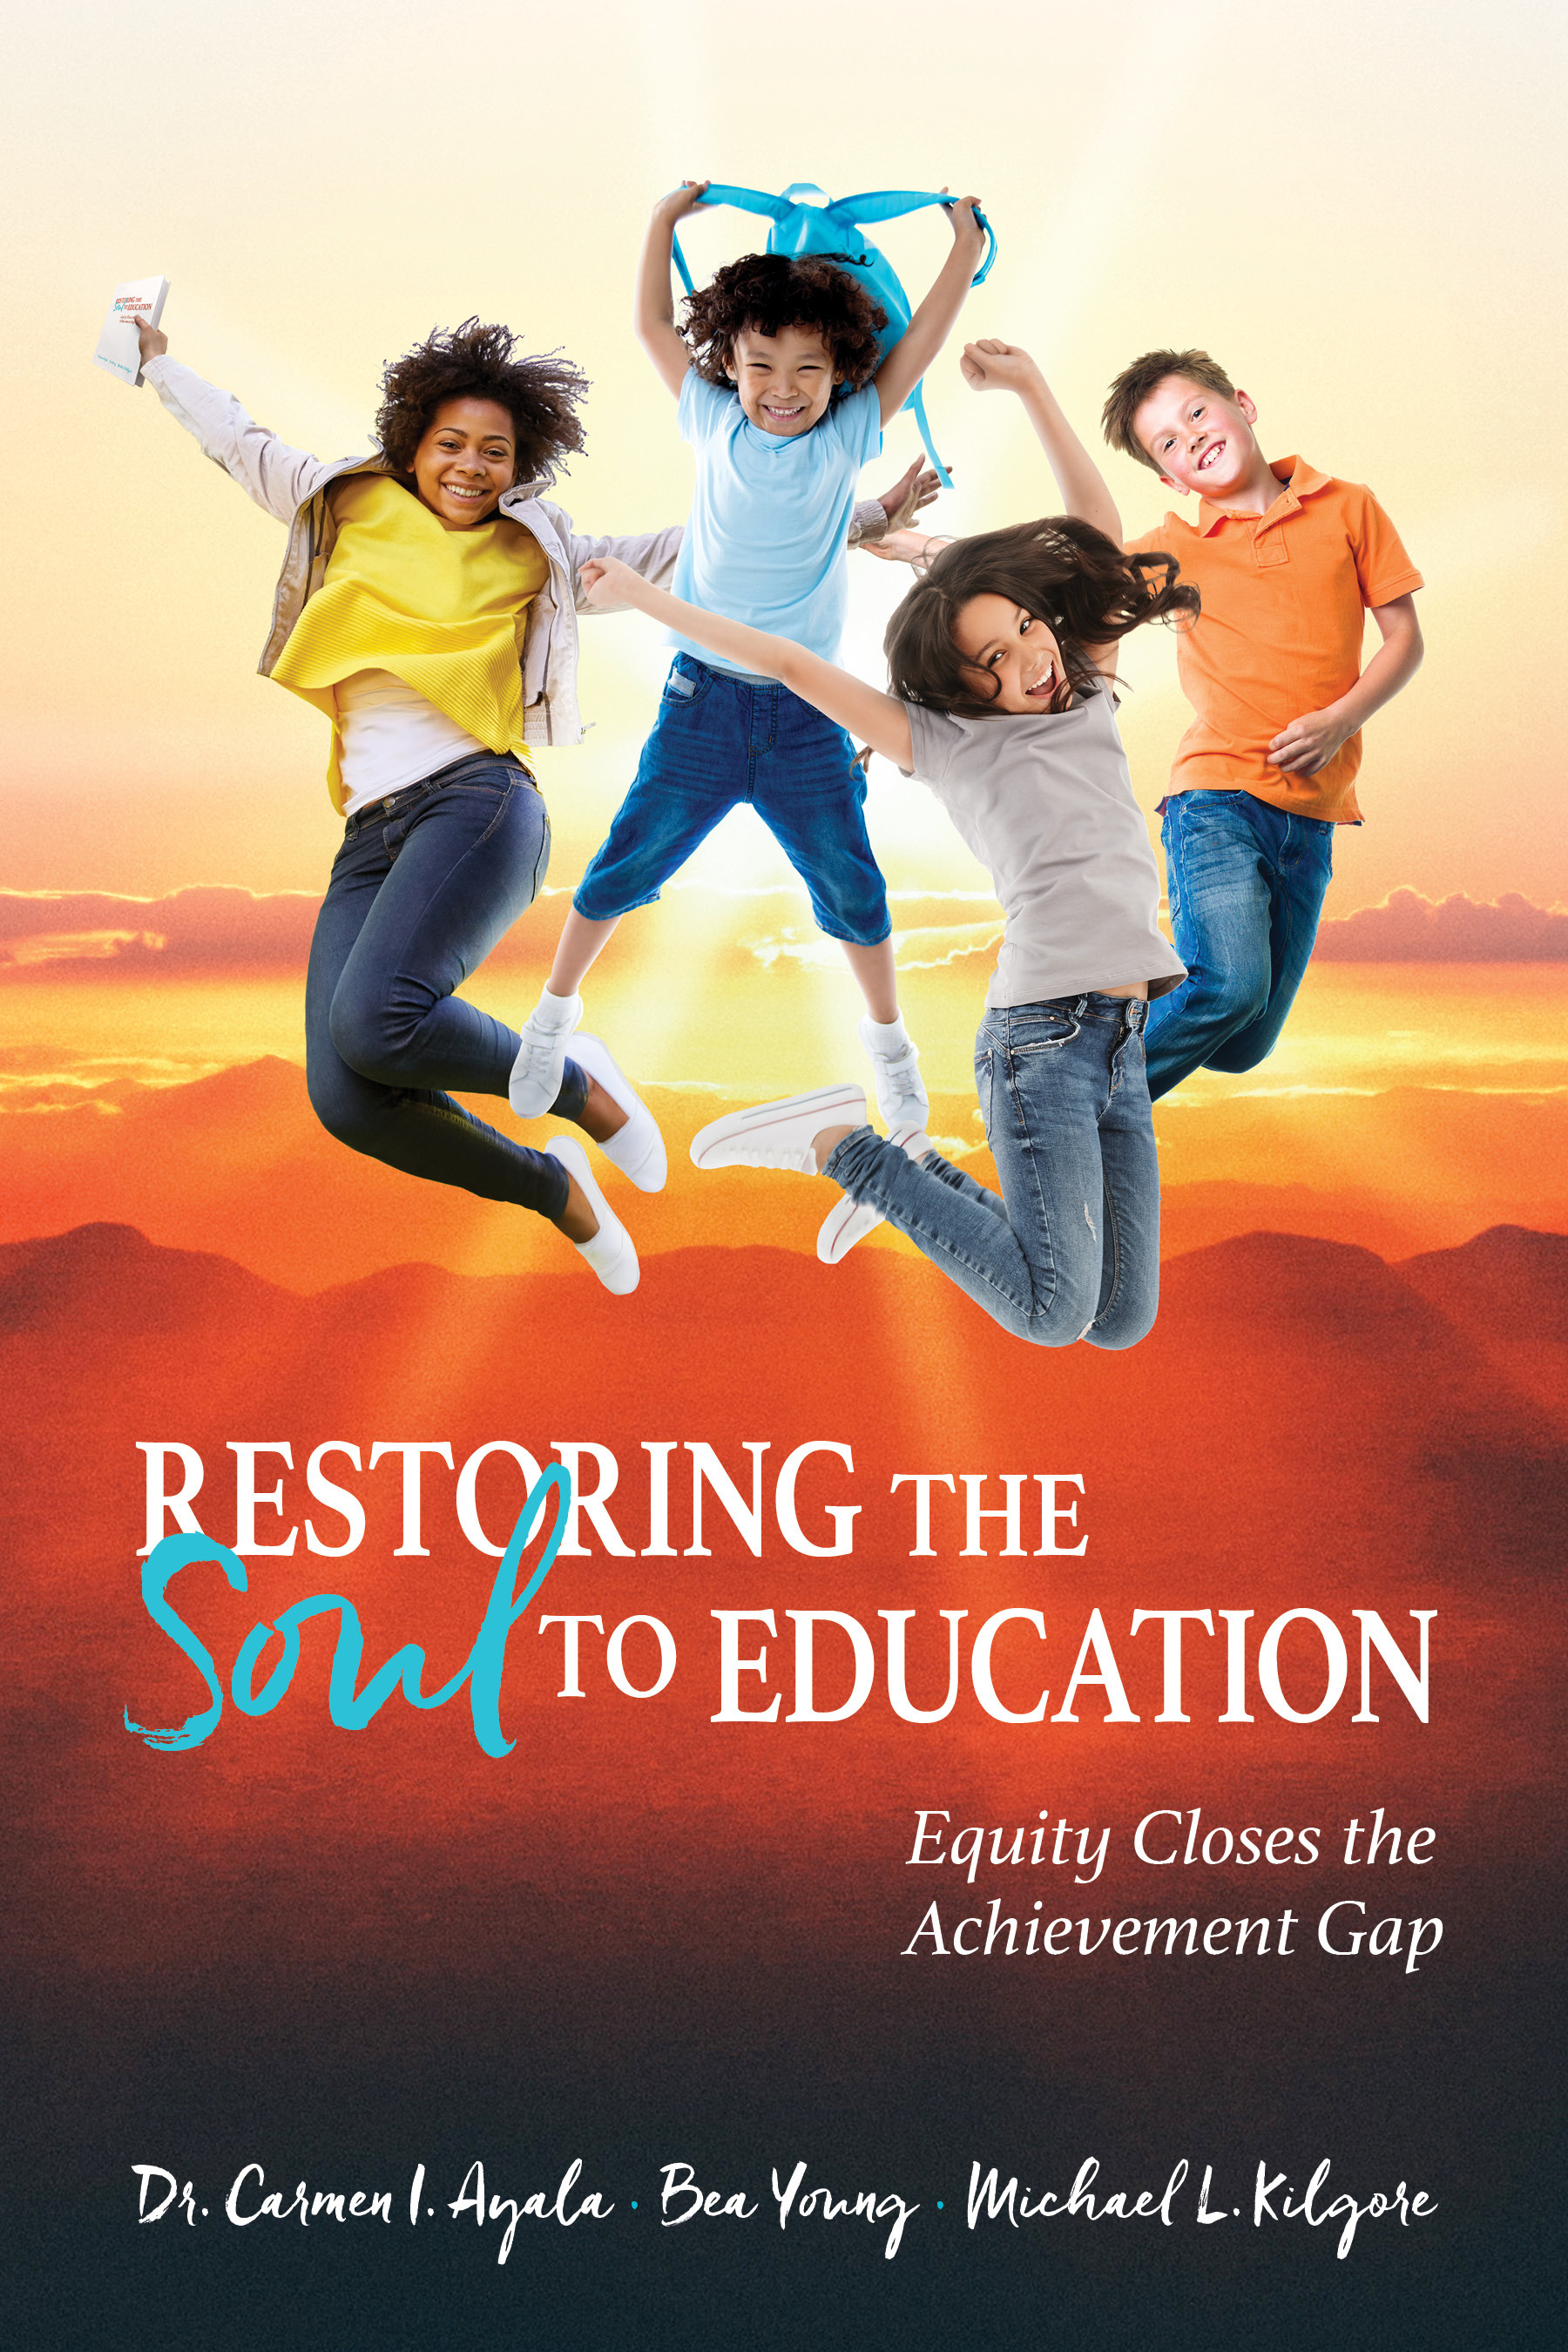 Restoring the Soul to Education: Equity Closes the Achievement Gap